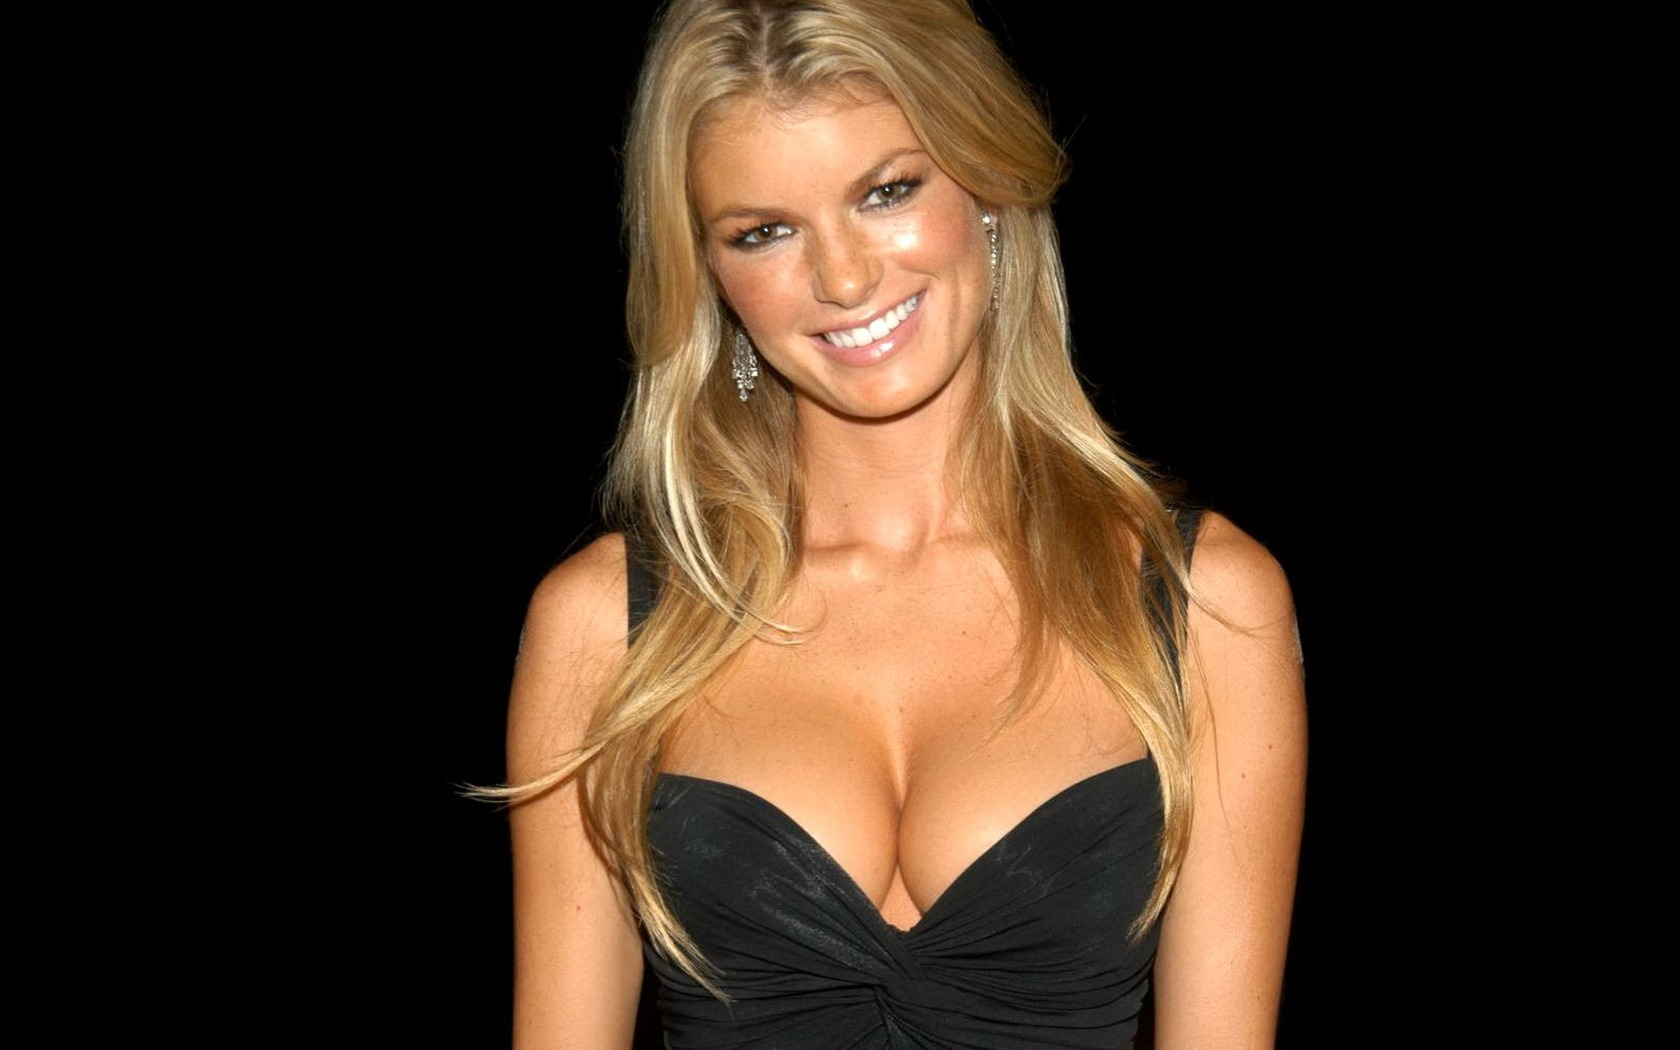 Marisa Miller #011 - 1680x1050 Wallpapers Pictures Photos Images